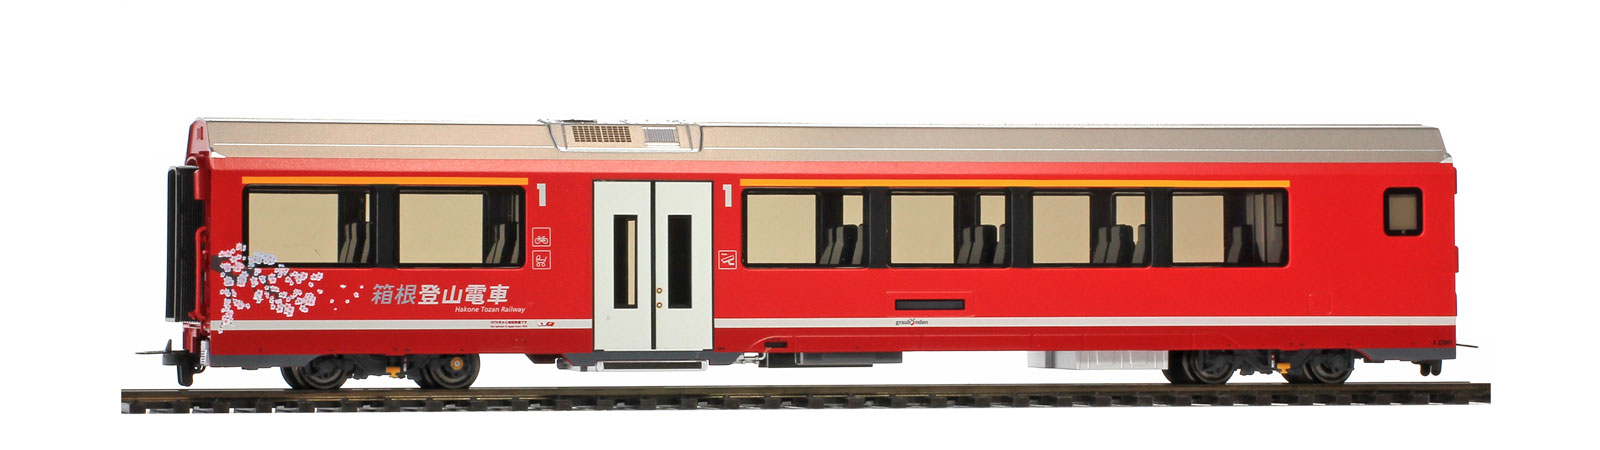 Bemo 3298 102 RhB A 570 01 AGZ end car 'Hakone Tozan Railway'